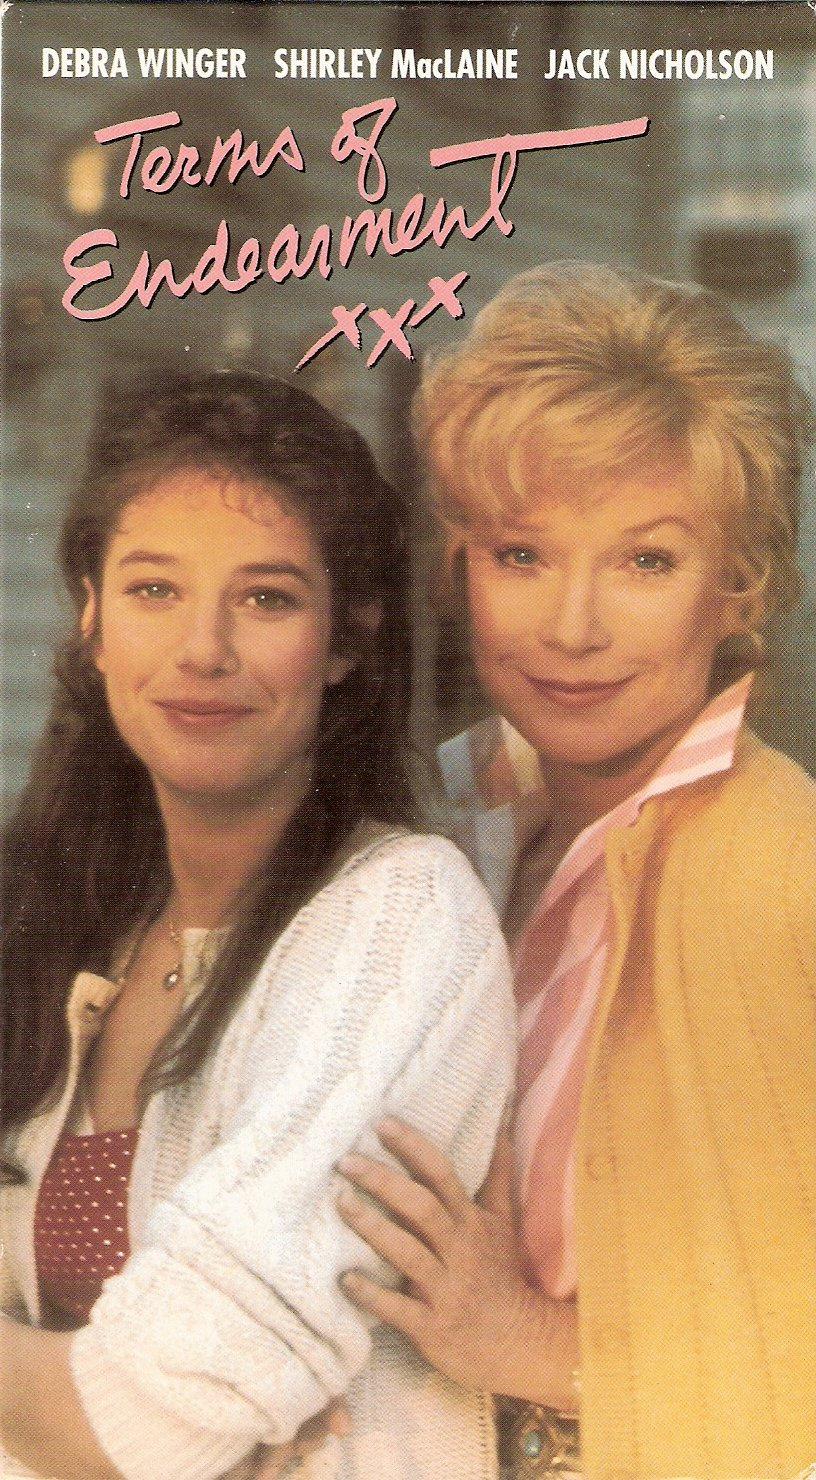 Terms of Endearment Starring Debra Winger Shirley MacLaine